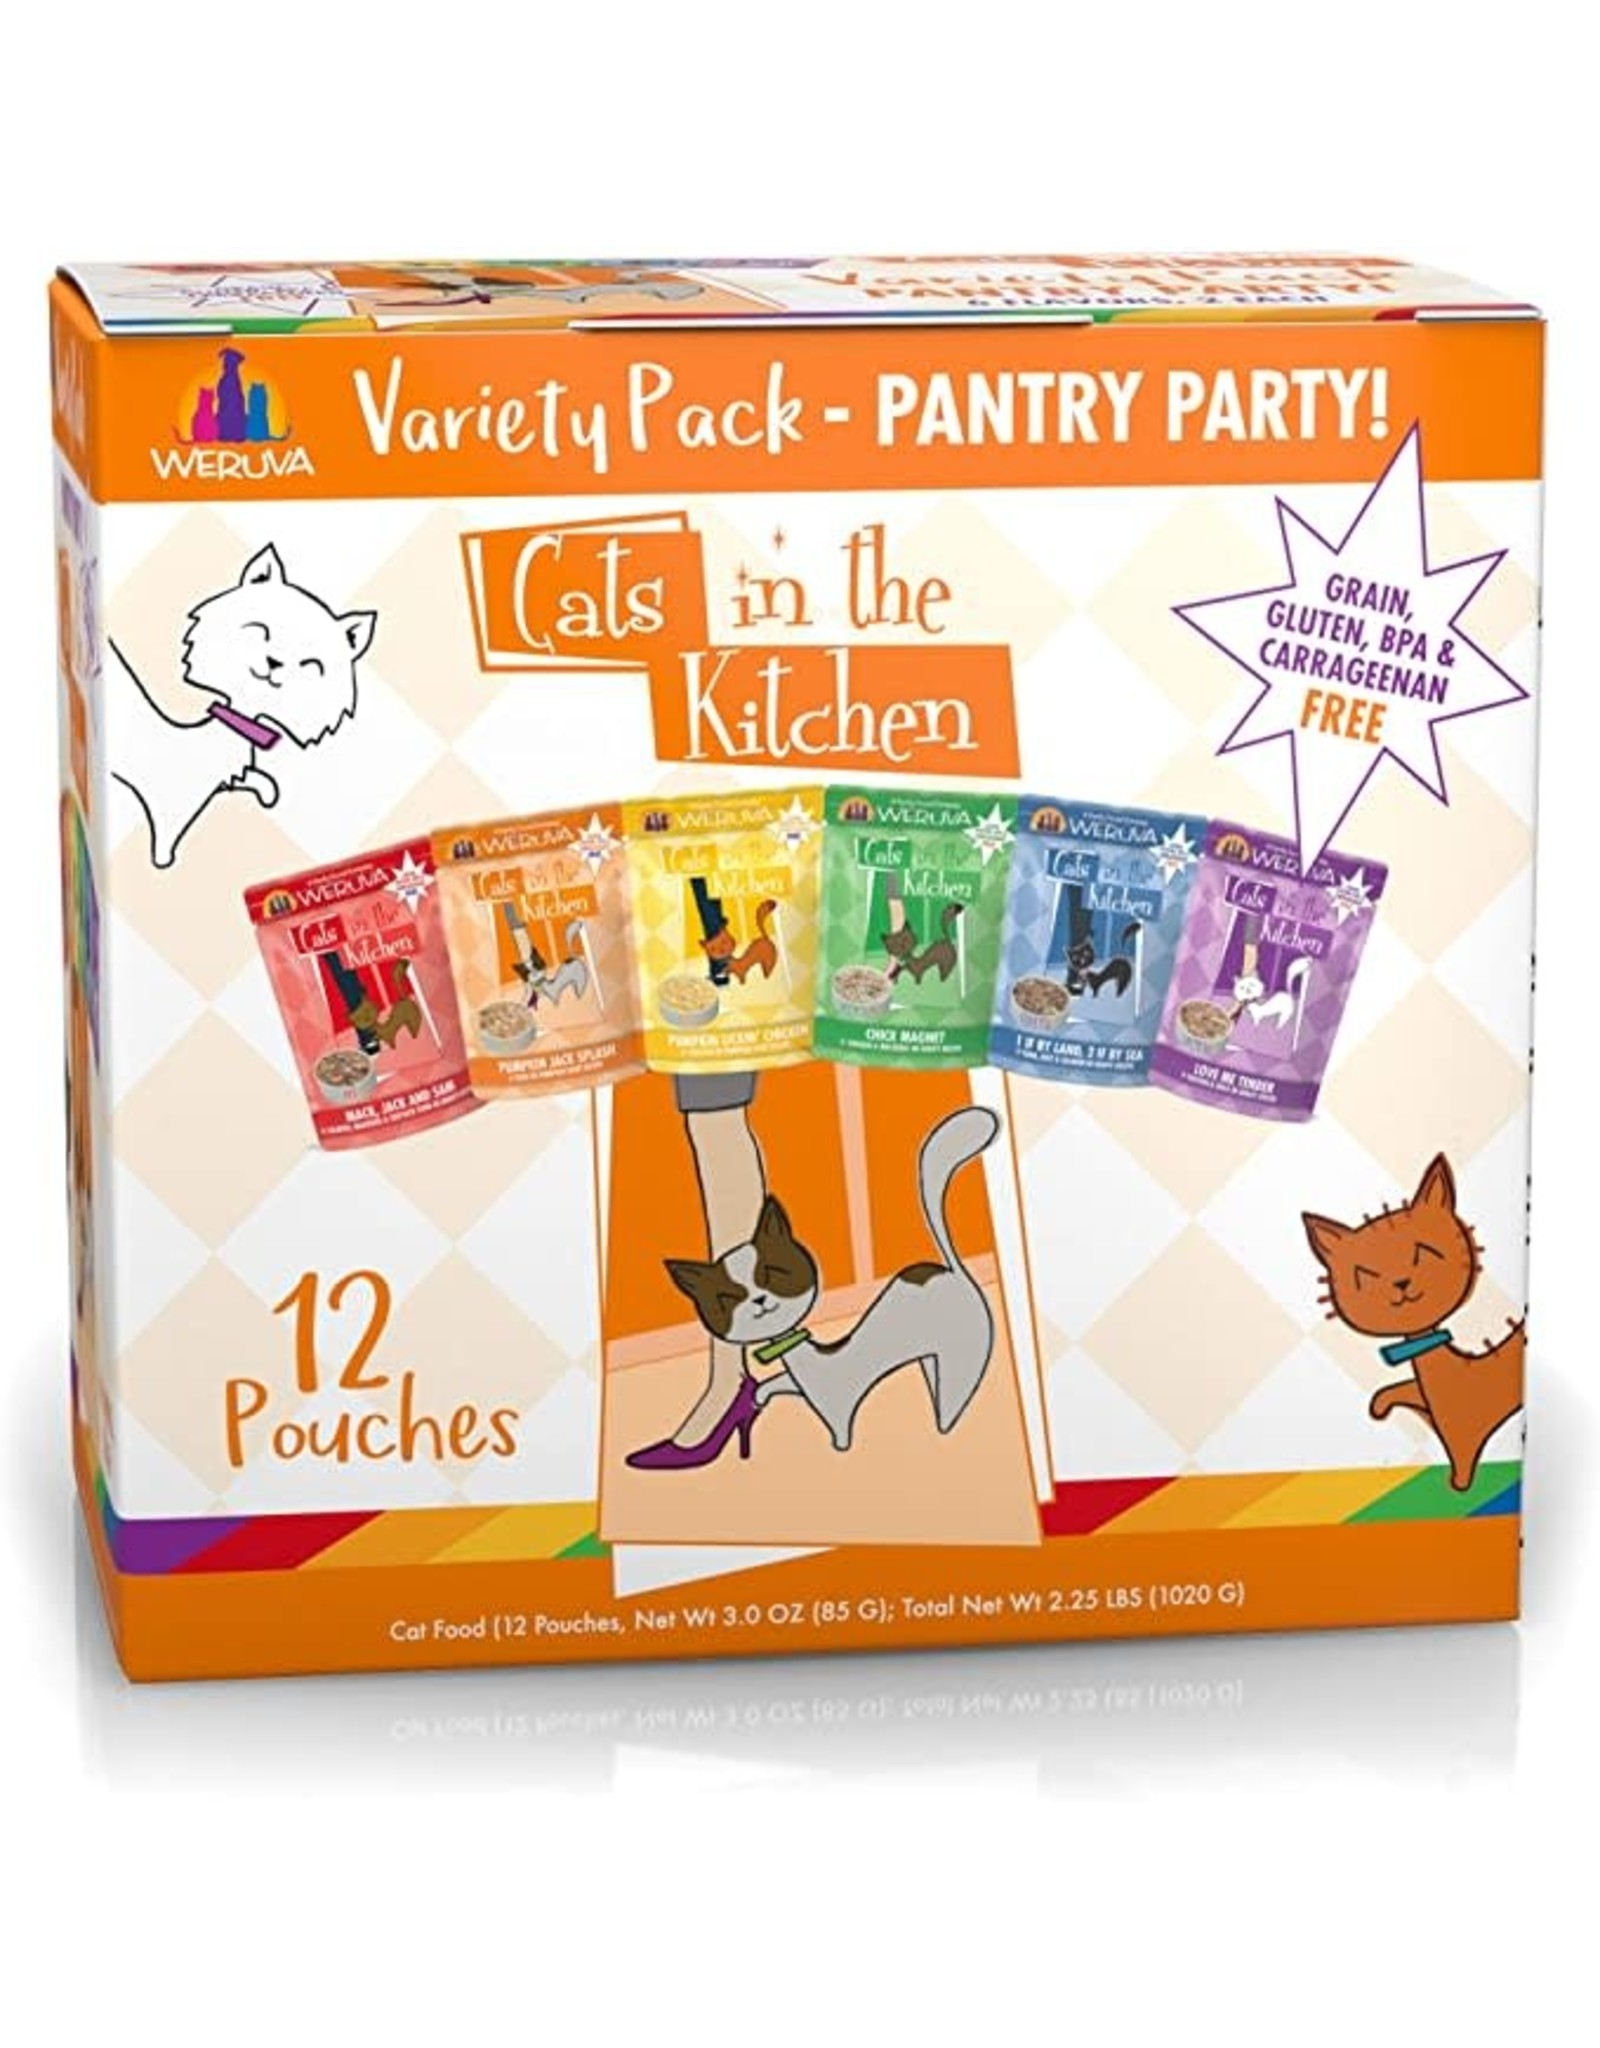 Weruva Weruva Cats in the Kitchen Variety Pack Pantry Party Cat Food 3oz Pouch 12/cs